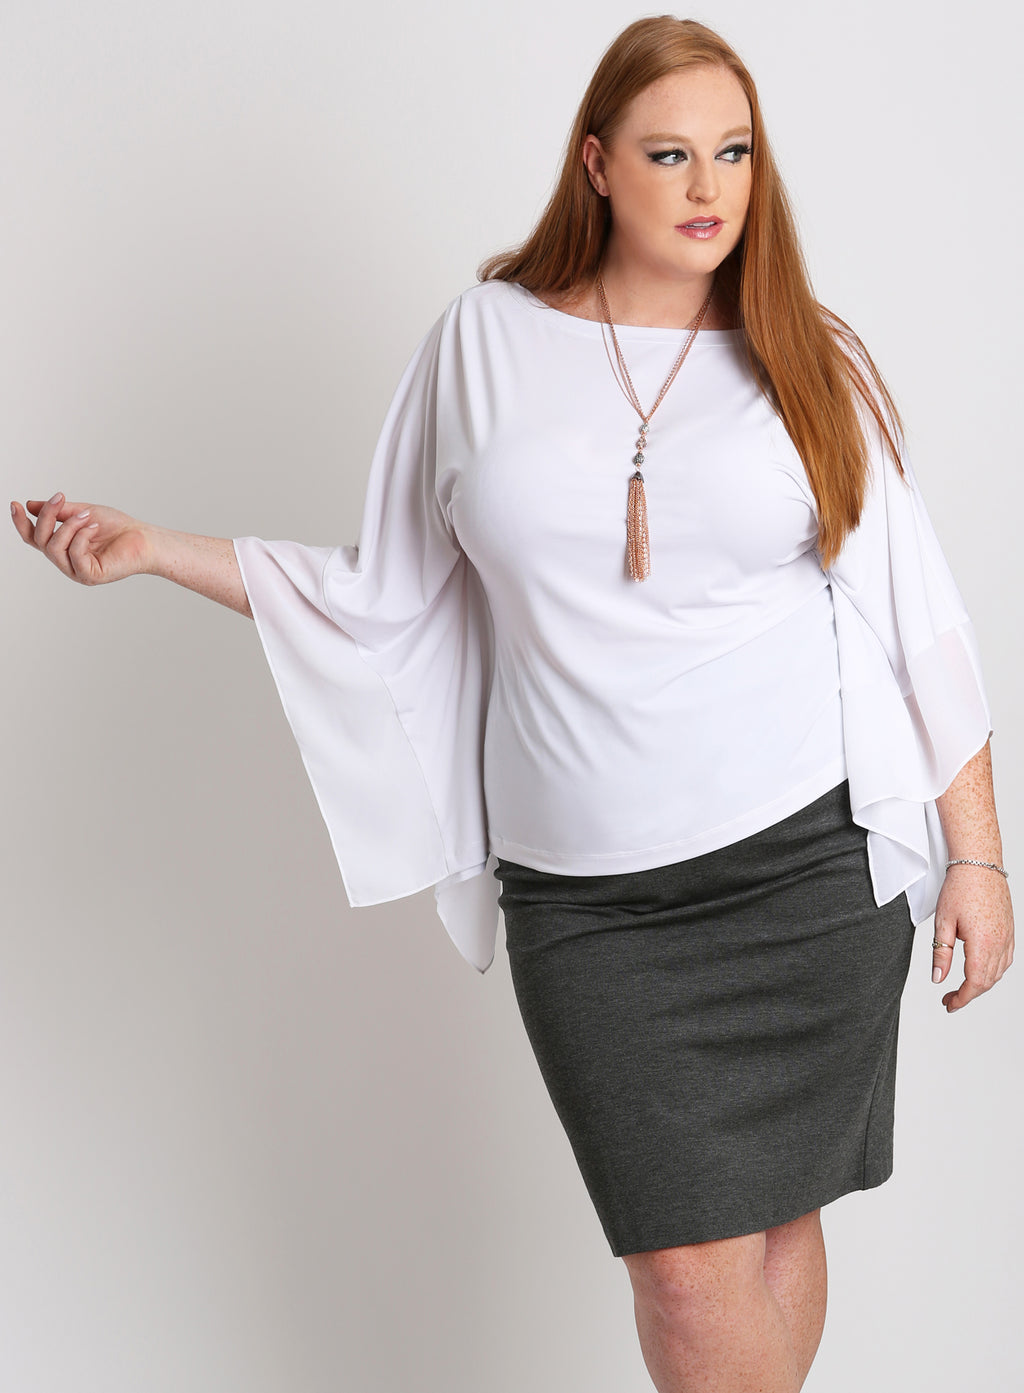 CURVY WOMEN'S WHITE PLUS SIZE KNIT TOP WITH SHEER CHIFFON SLEEVES